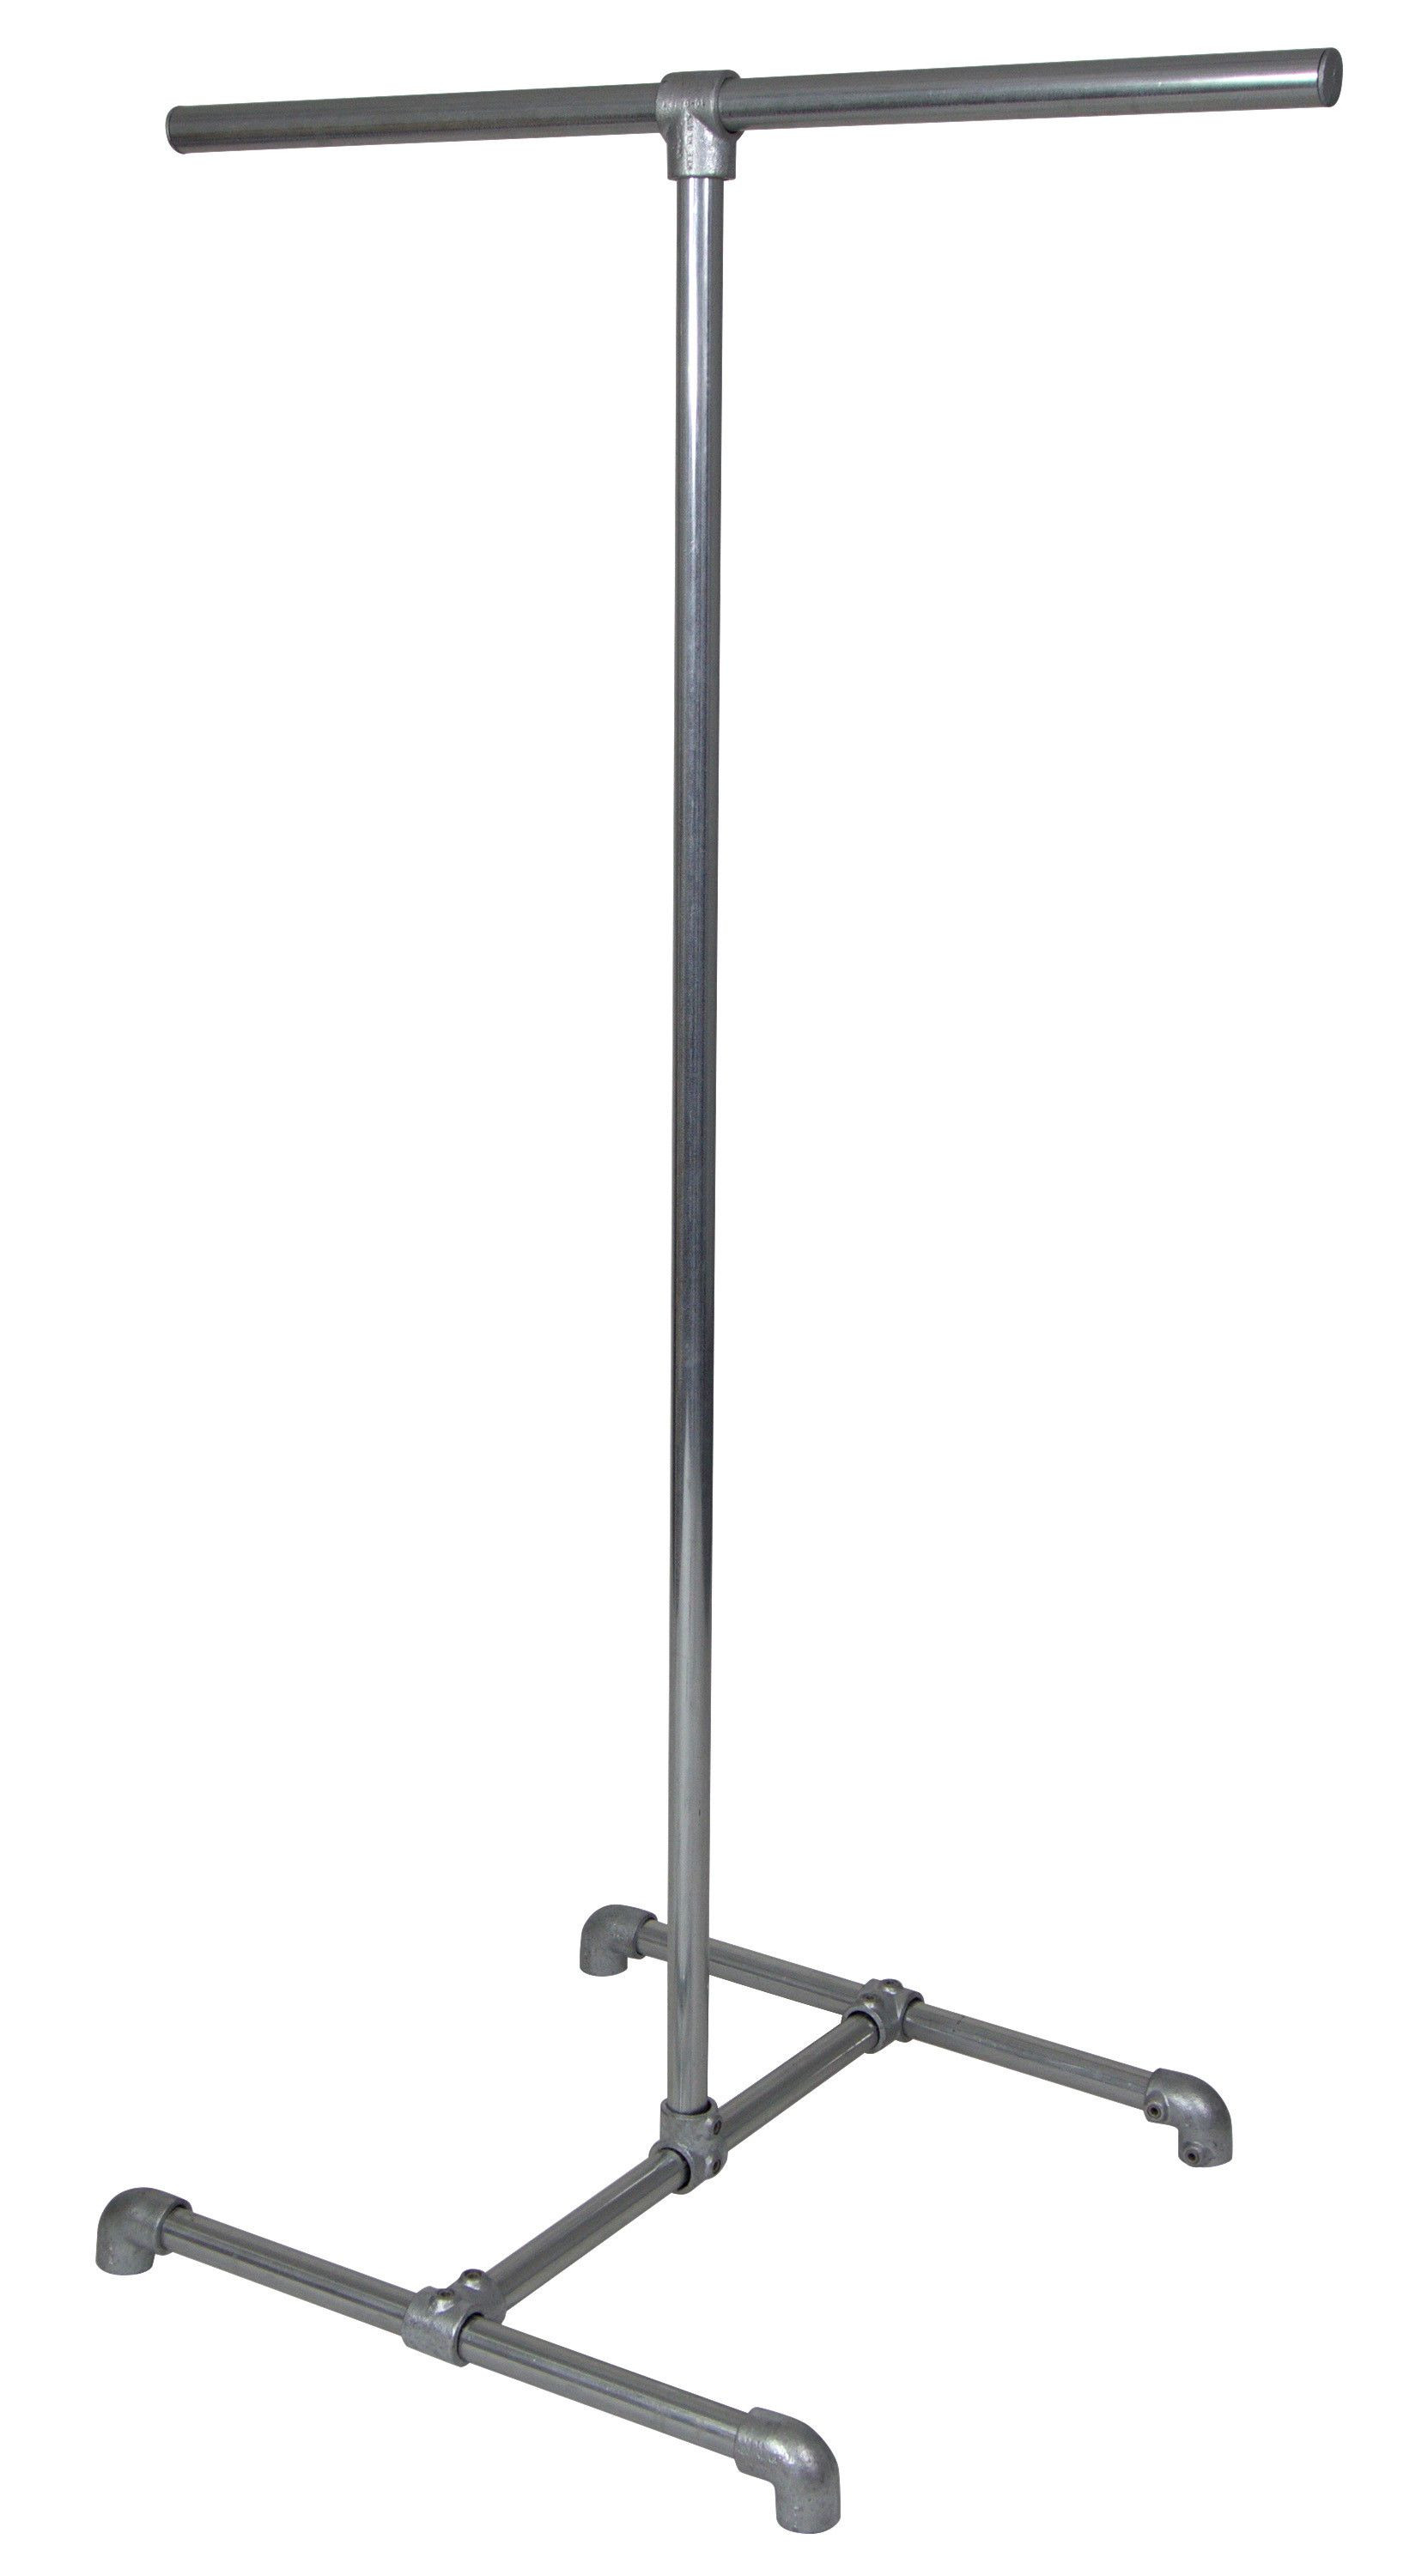 Two-way clothing rail (height 1.8m) - Suitable for clothing shops